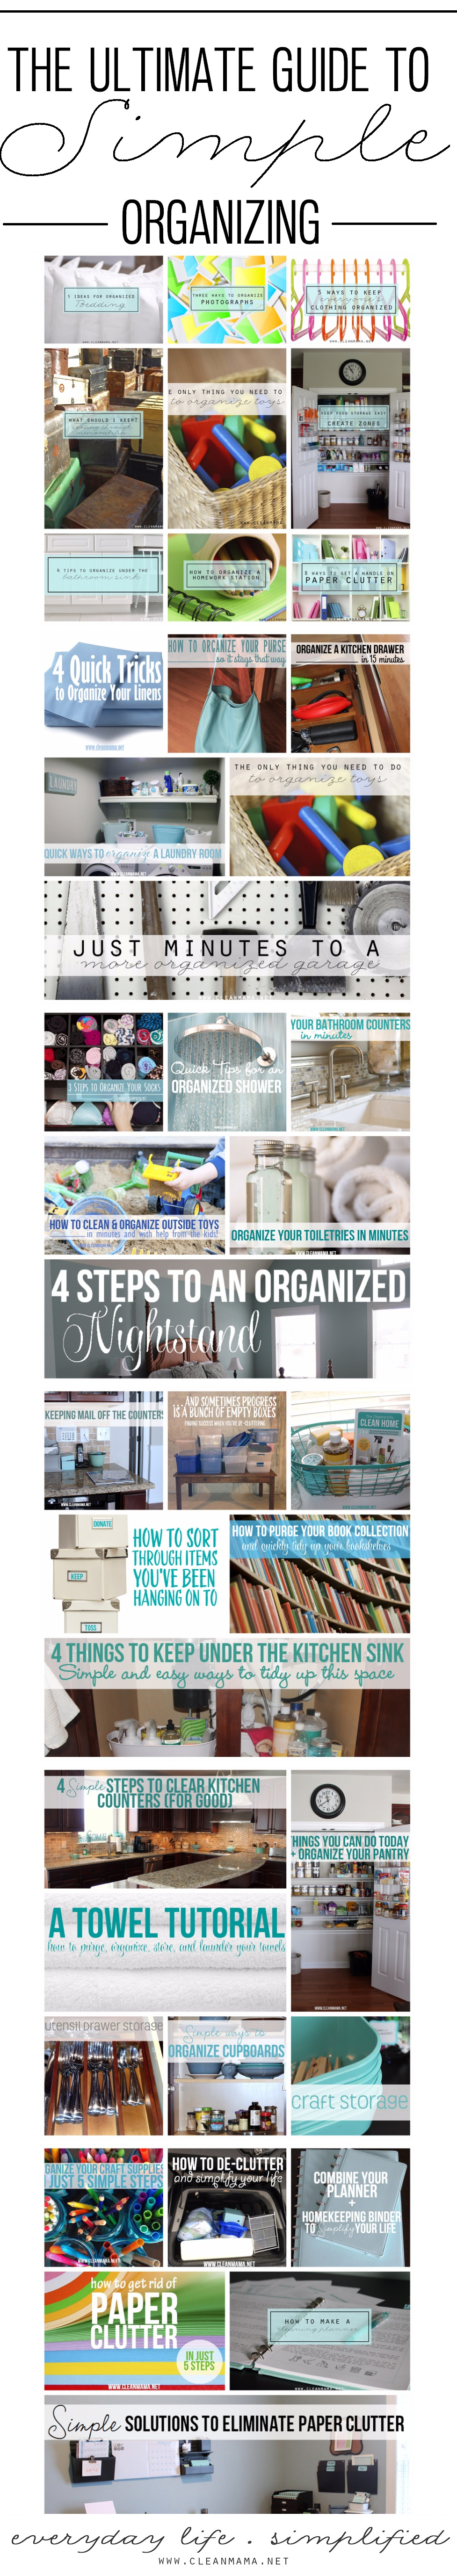 The Ultimate Guide to Simple Organizing via Clean Mama